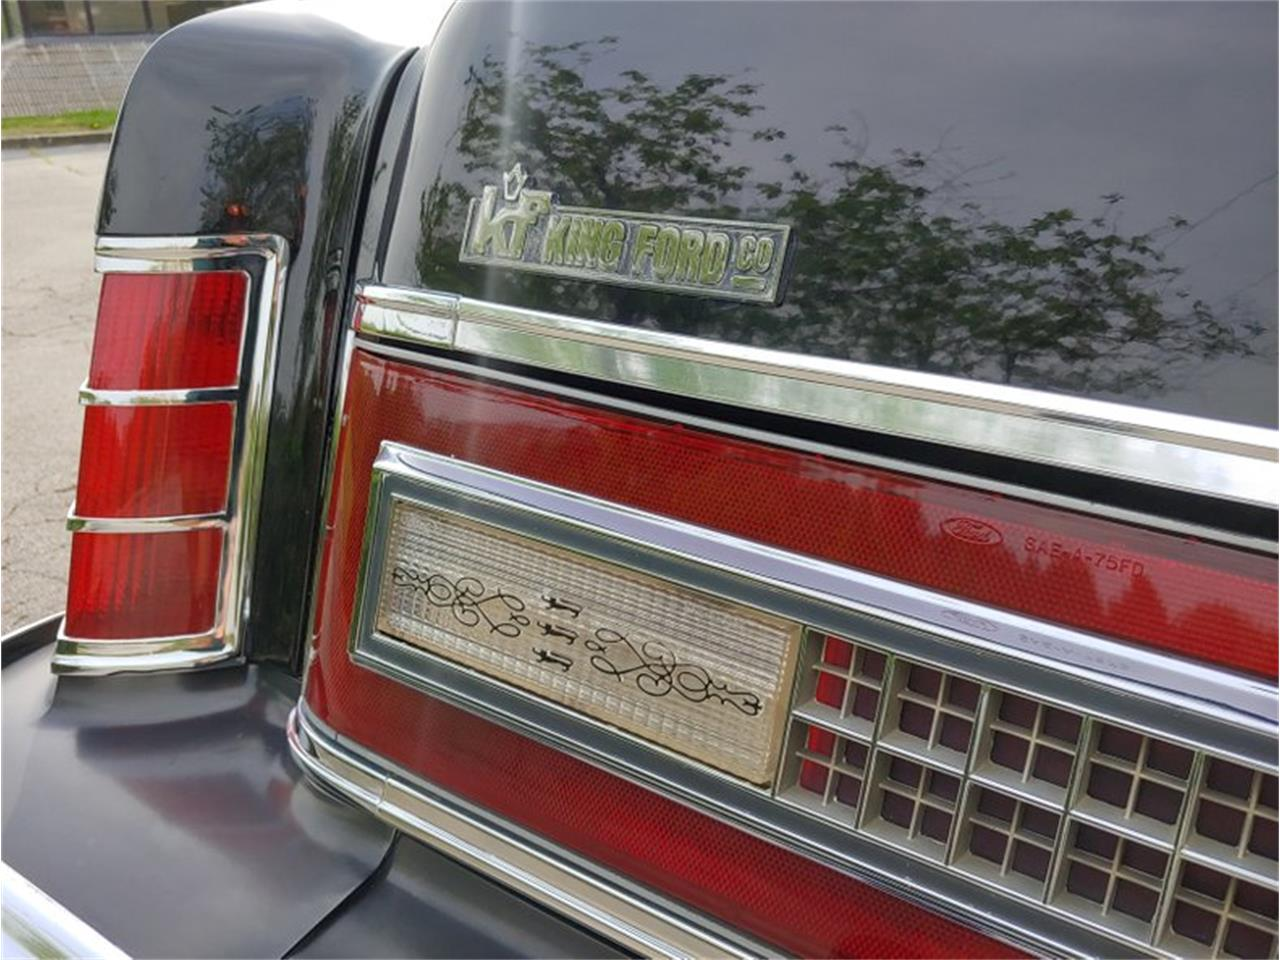 1978 Ford LTD for sale in Cookeville, TN – photo 77